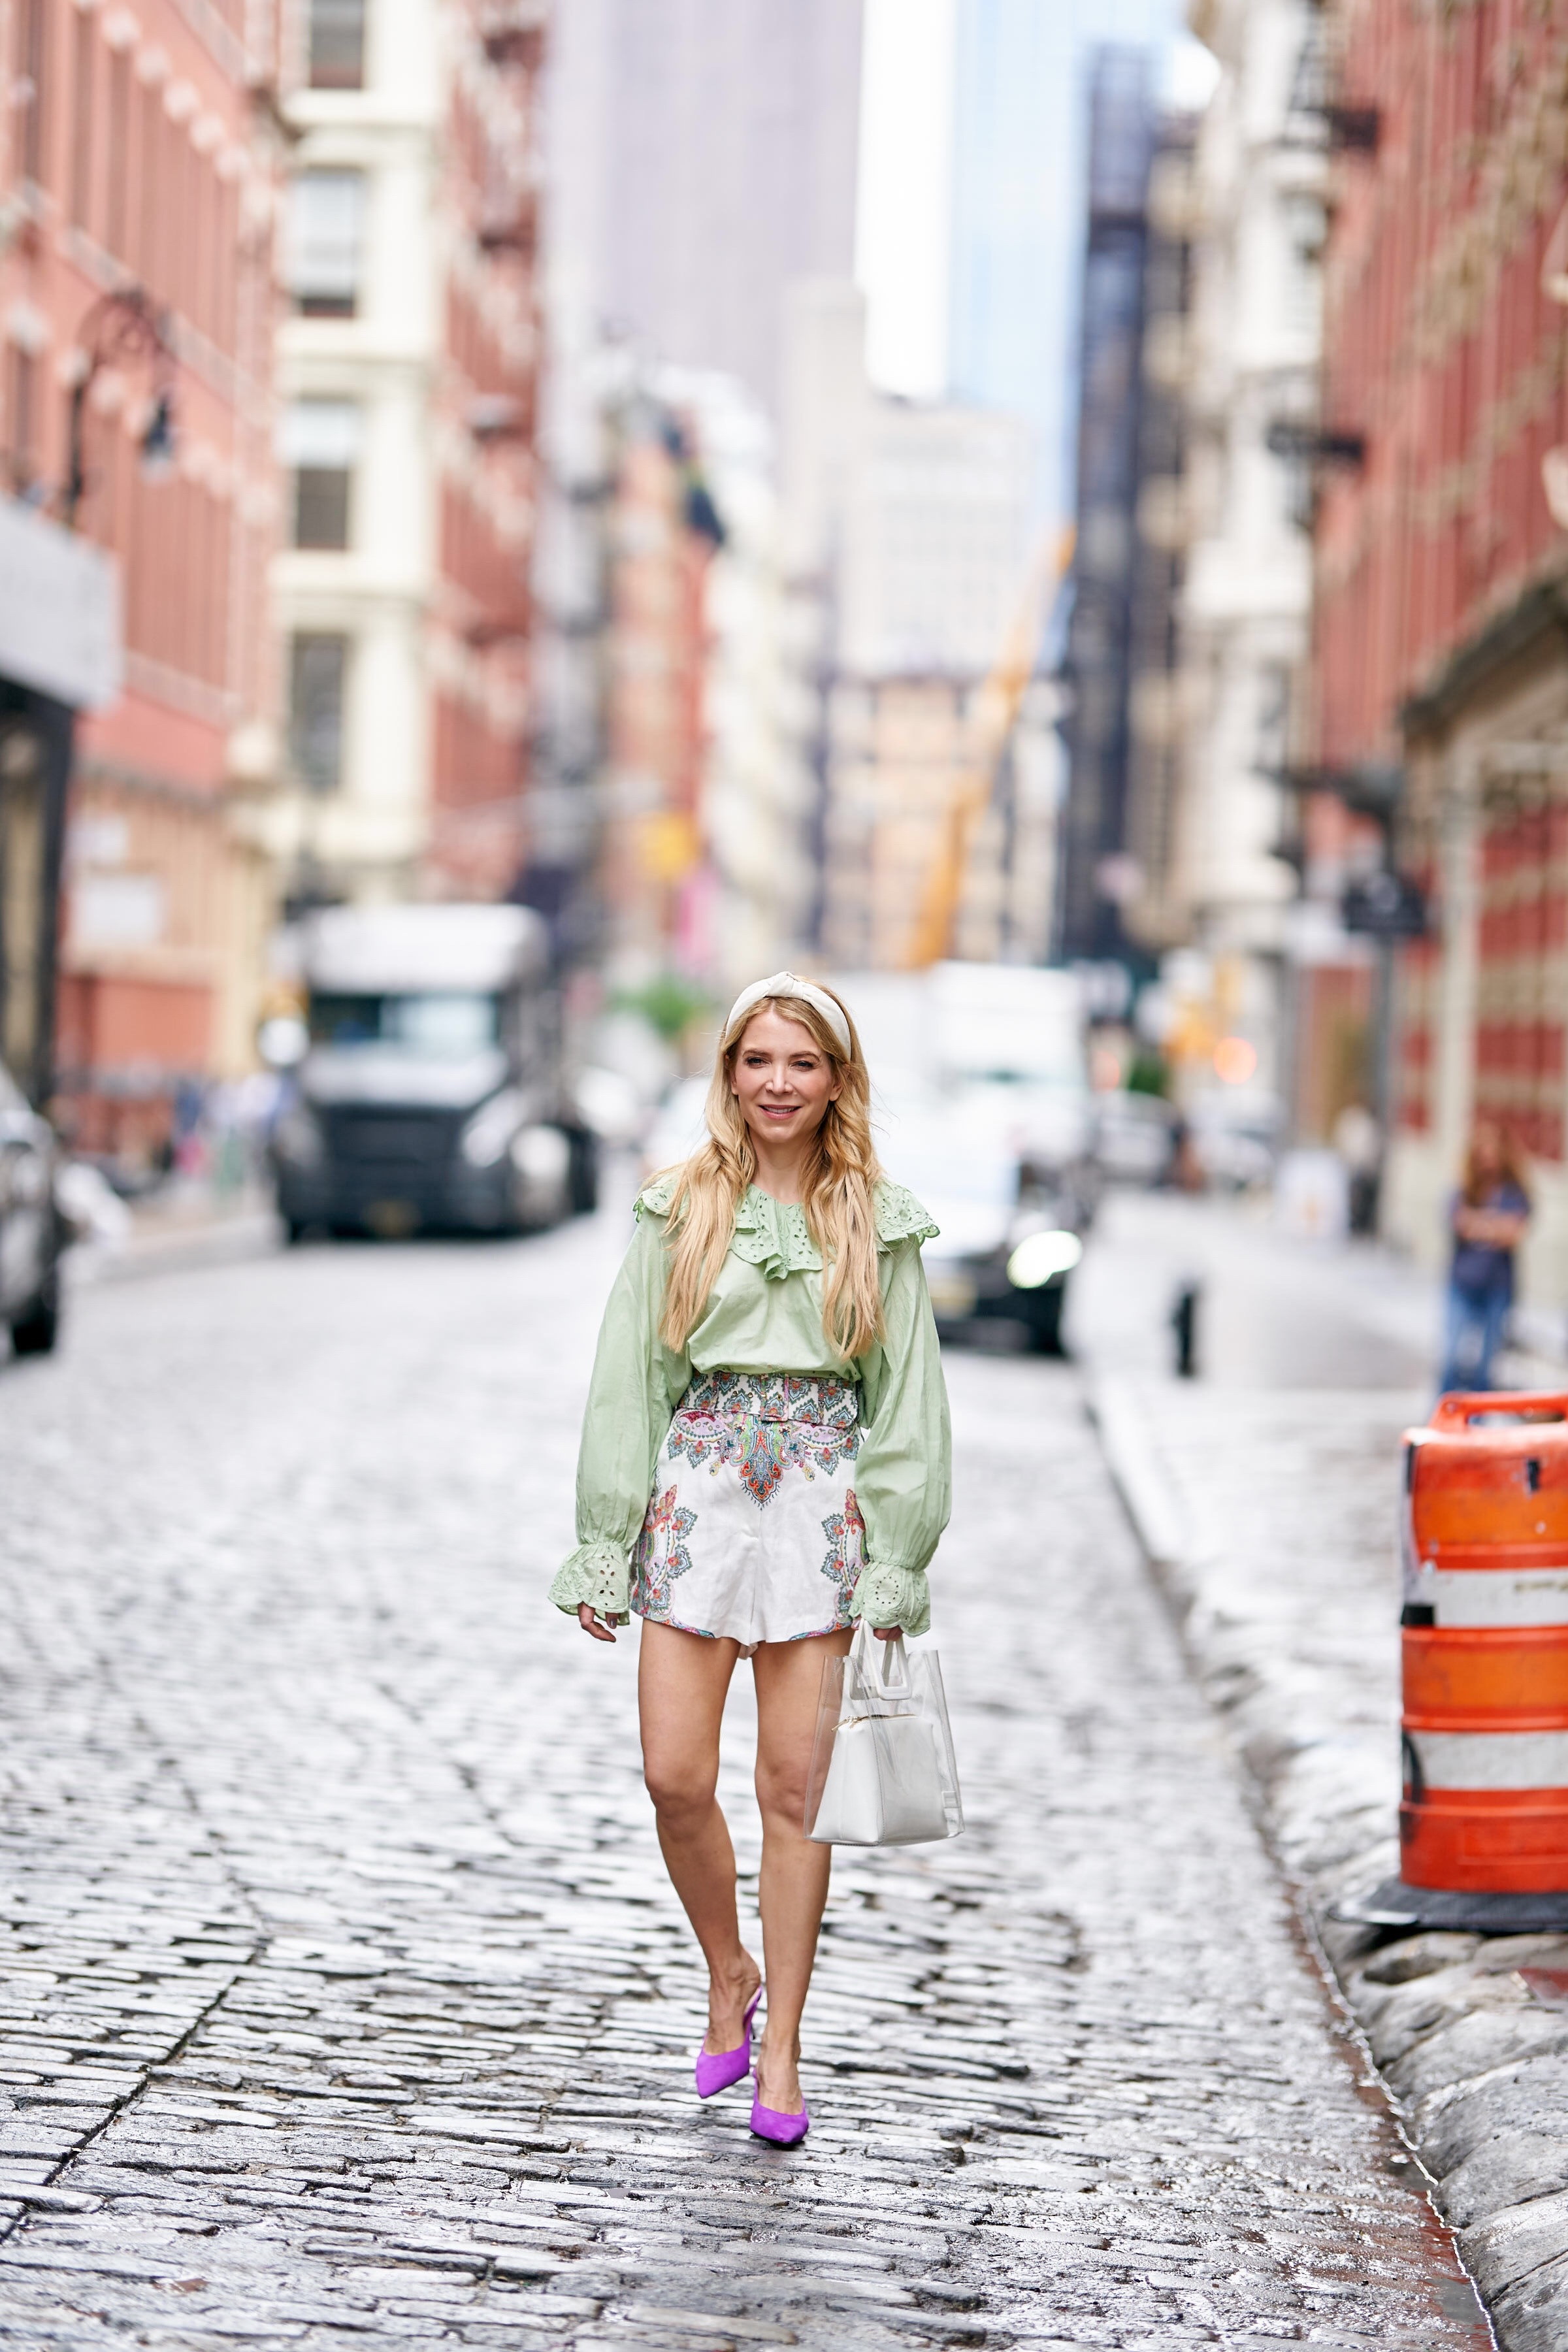 Zimmermann shorts, About the Outfits, www.abouttheoutfits.com